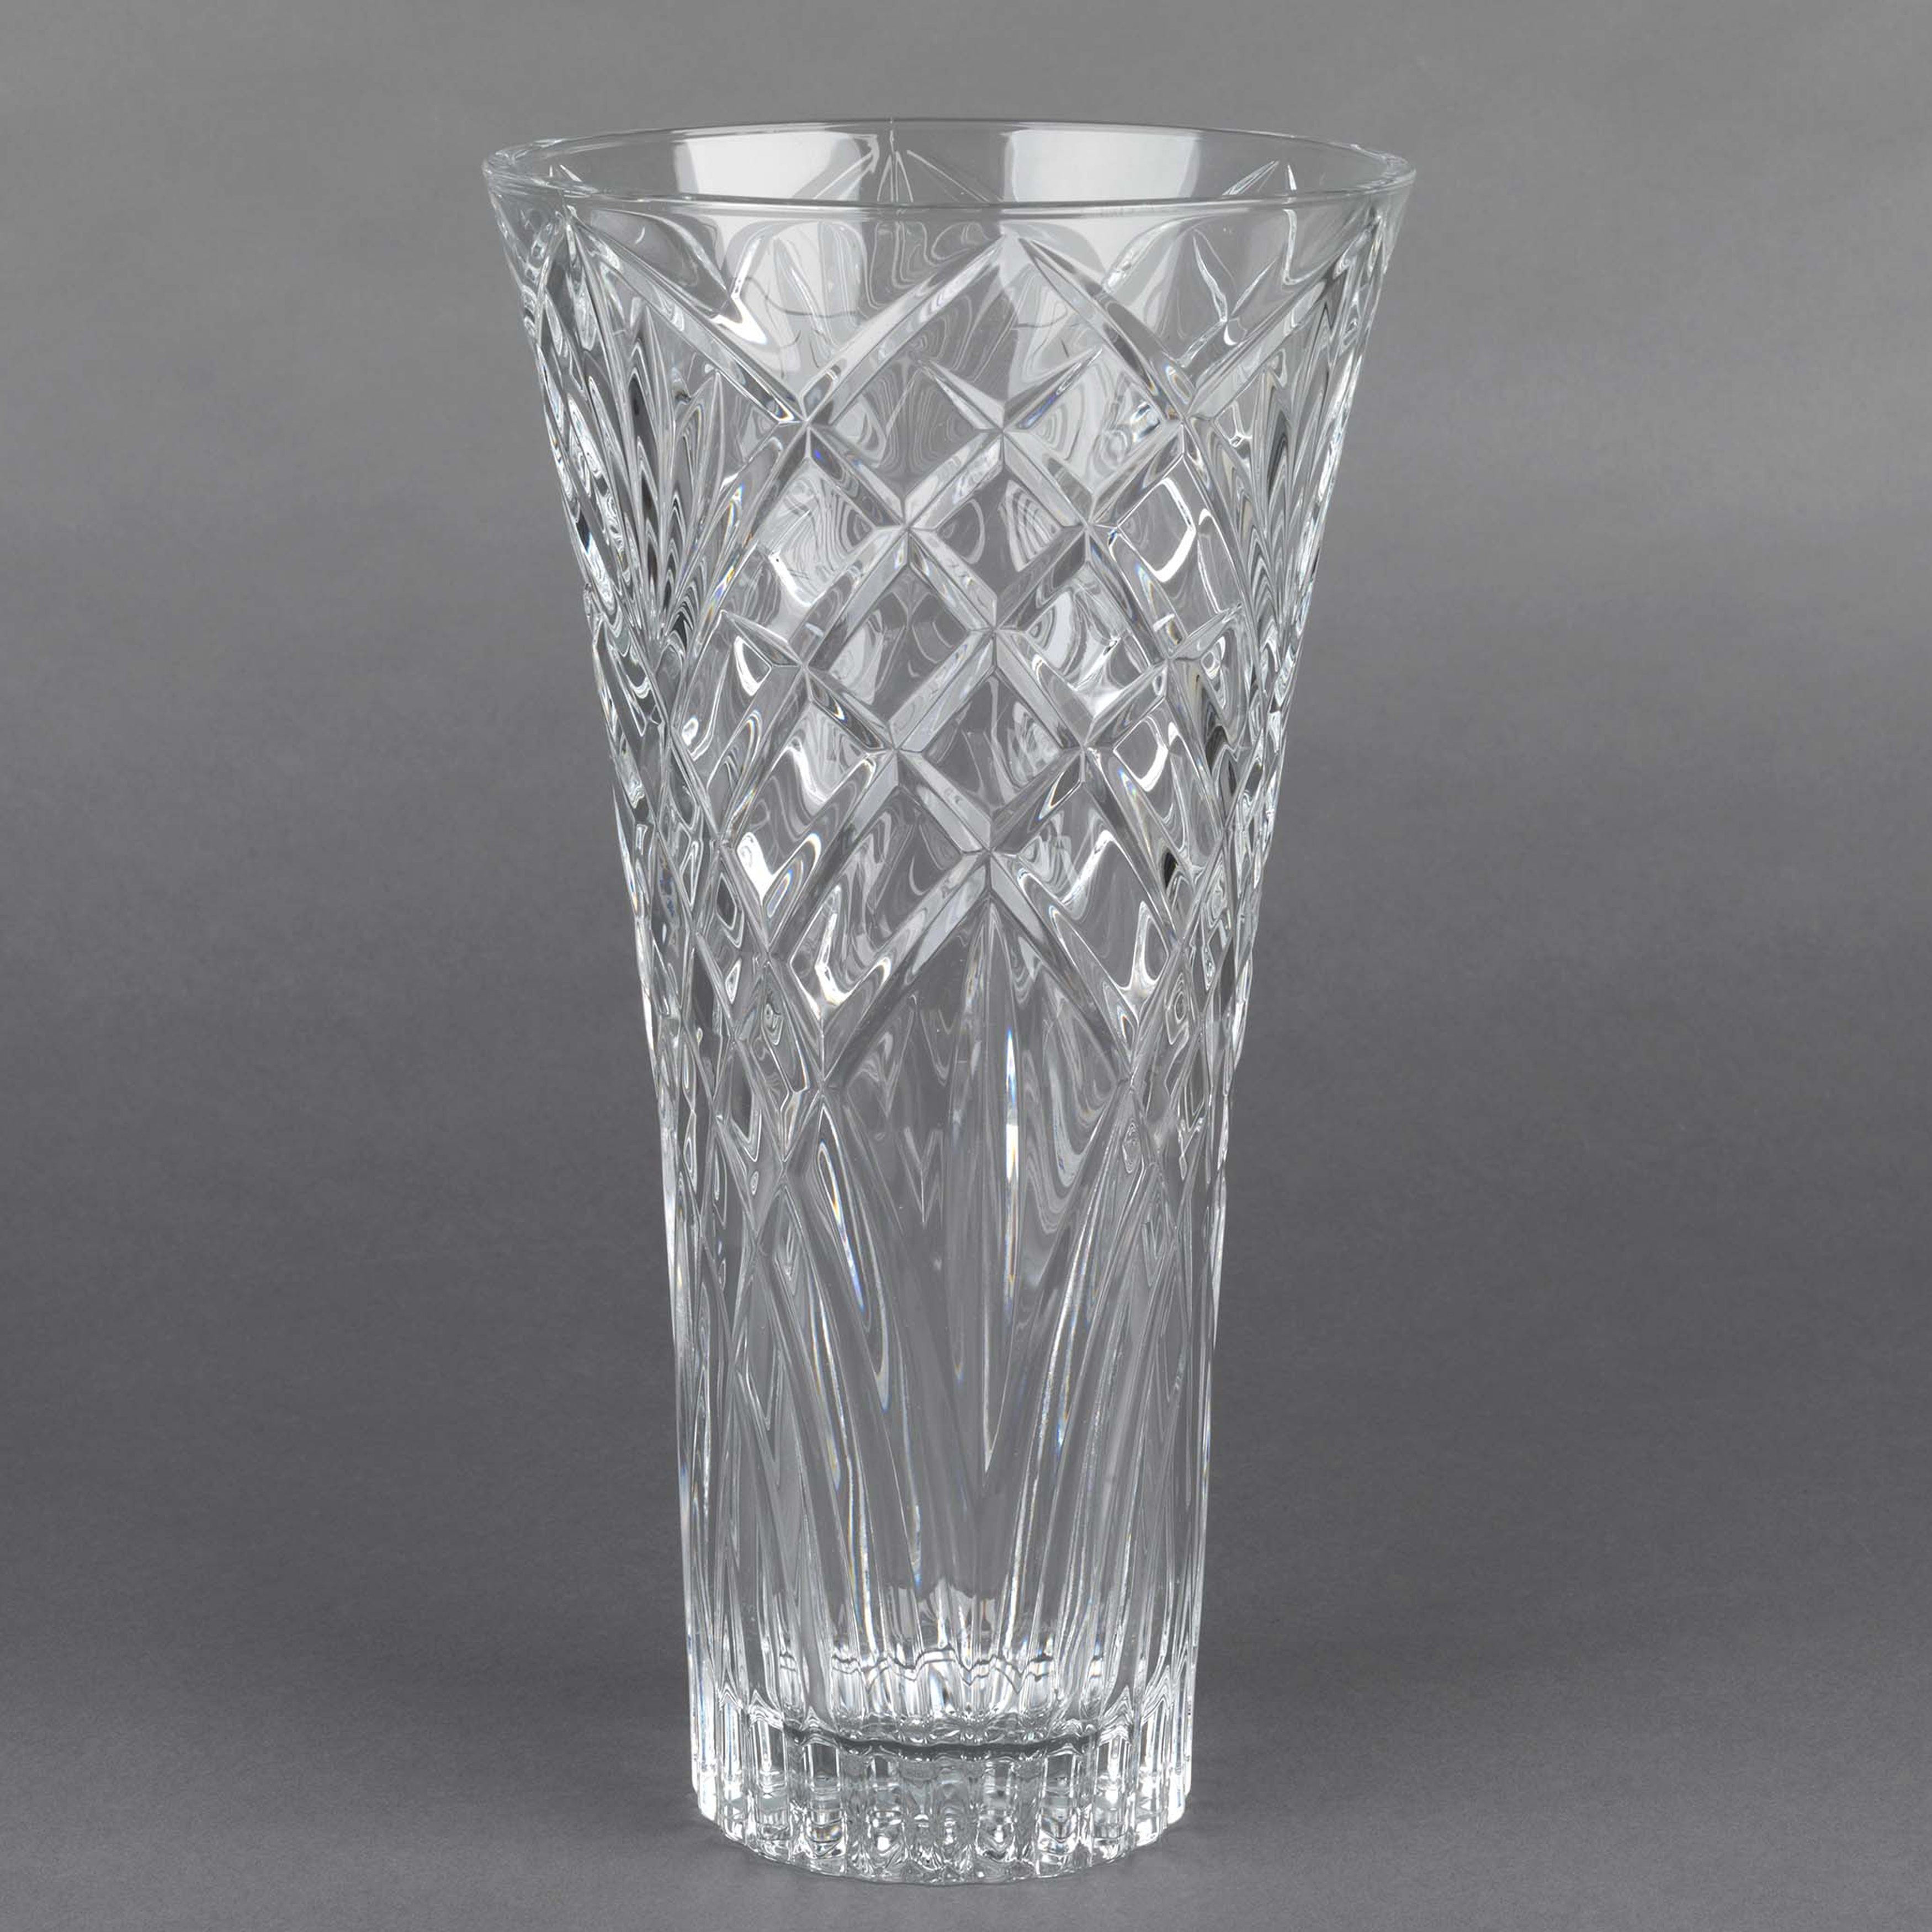 select img bdetail flower crystal decor category view larger vase home